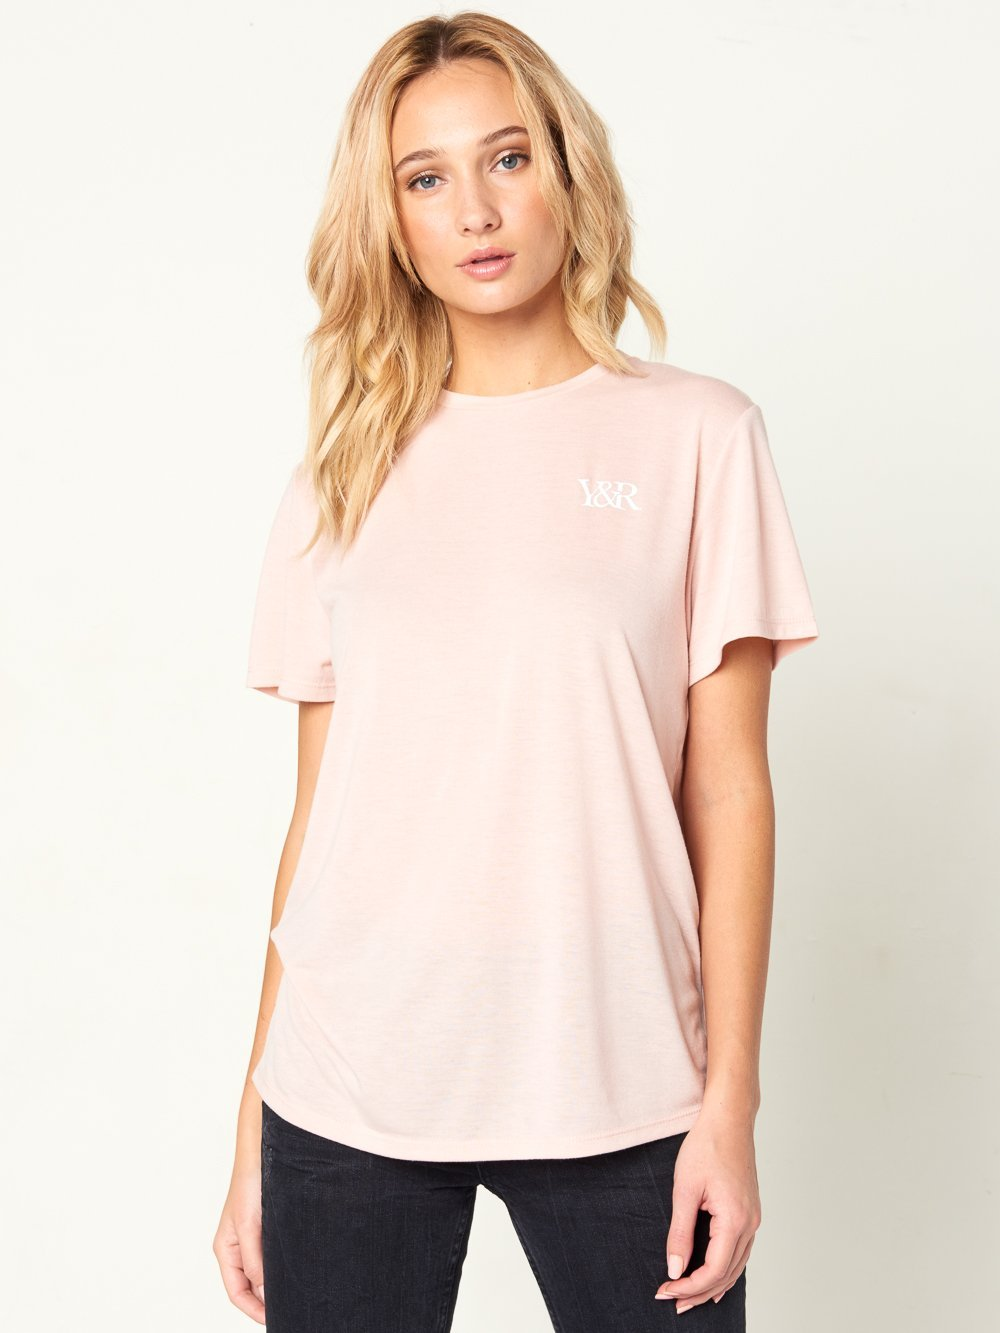 Reckless Girls Womens - Tops - Tees Galore S/S Tee - Pink